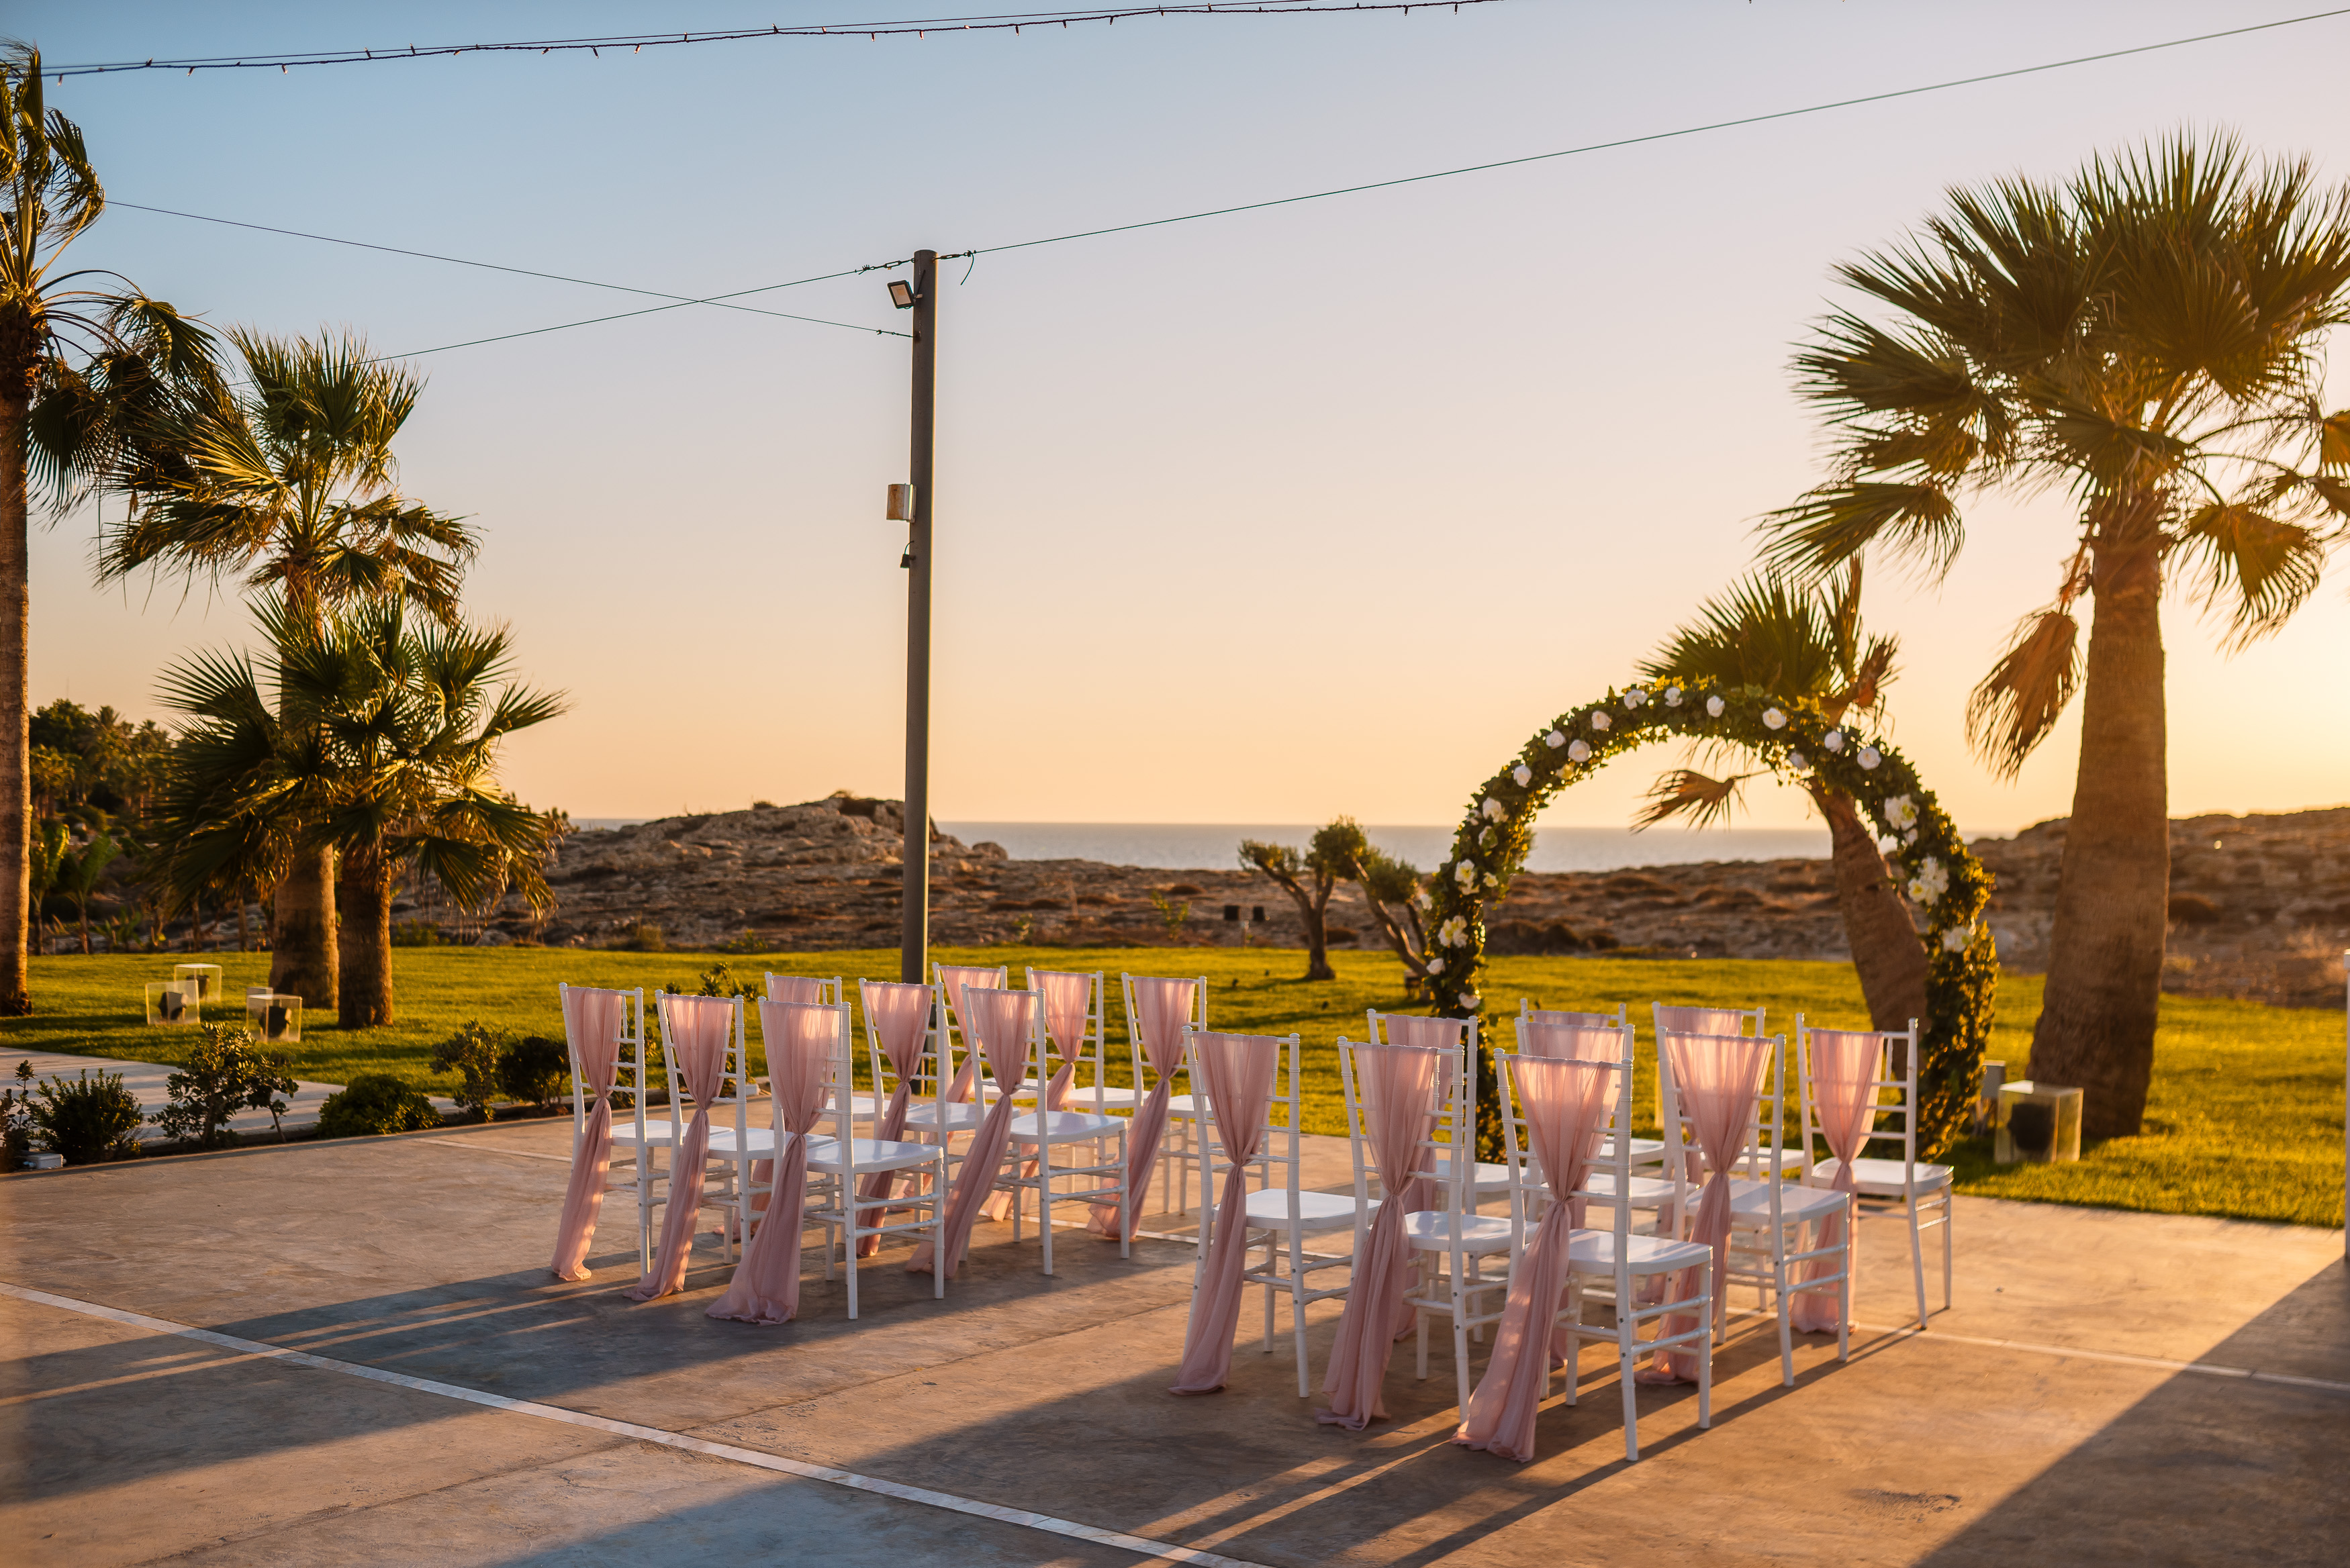 Alassos wedding venue in Cyprus